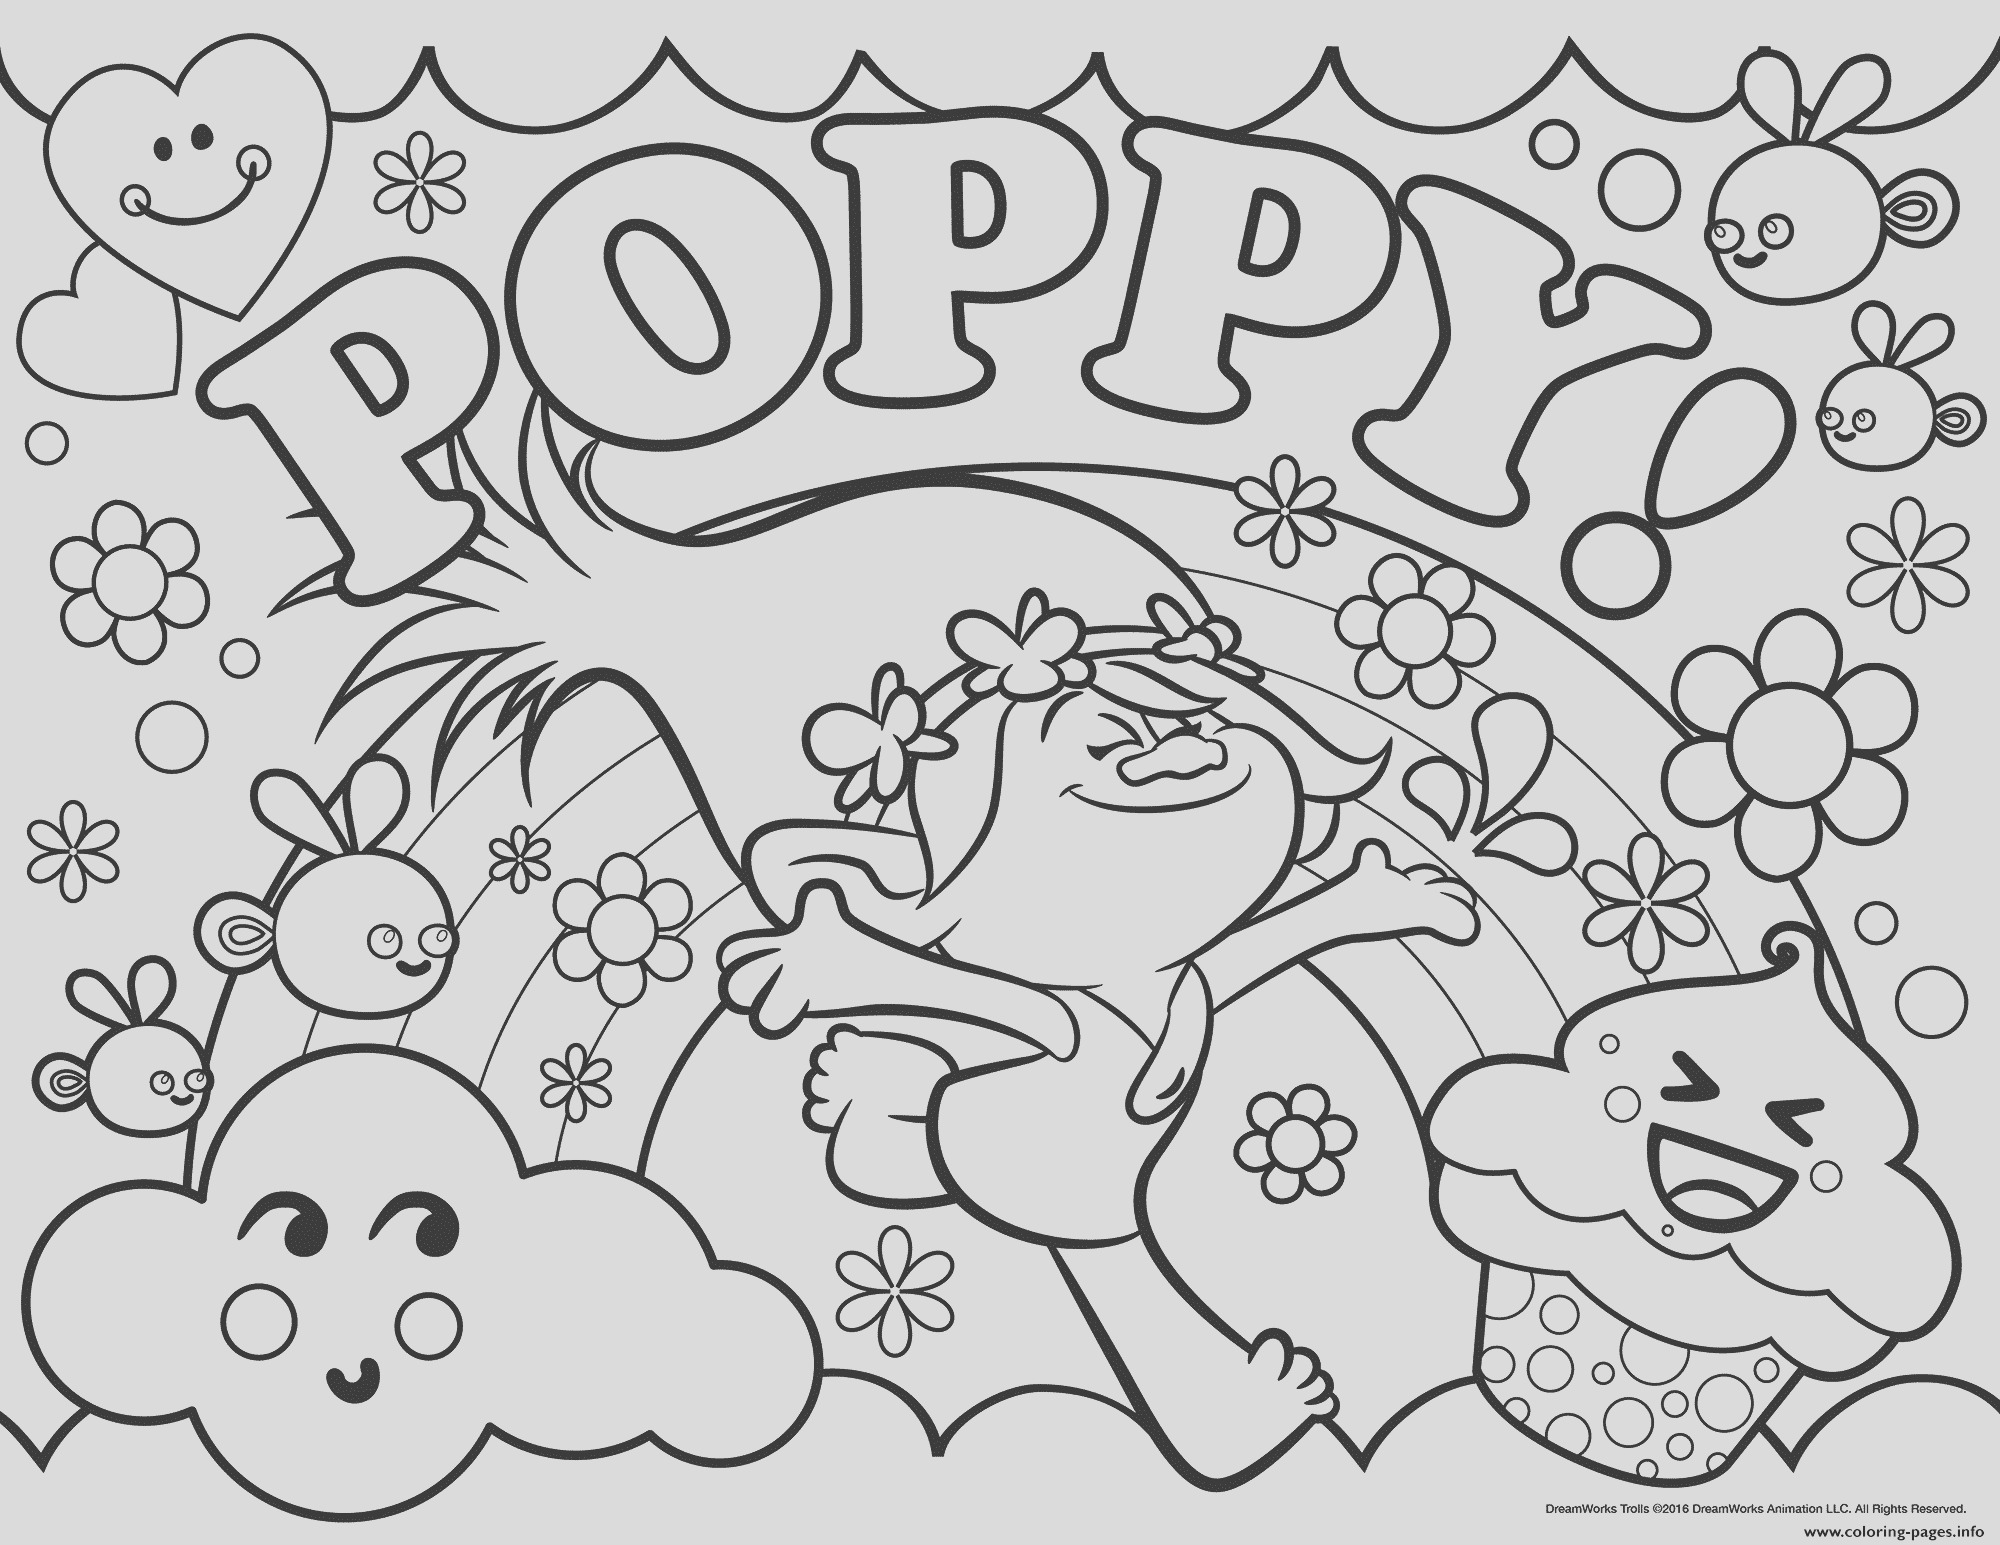 nsfw coloring pages